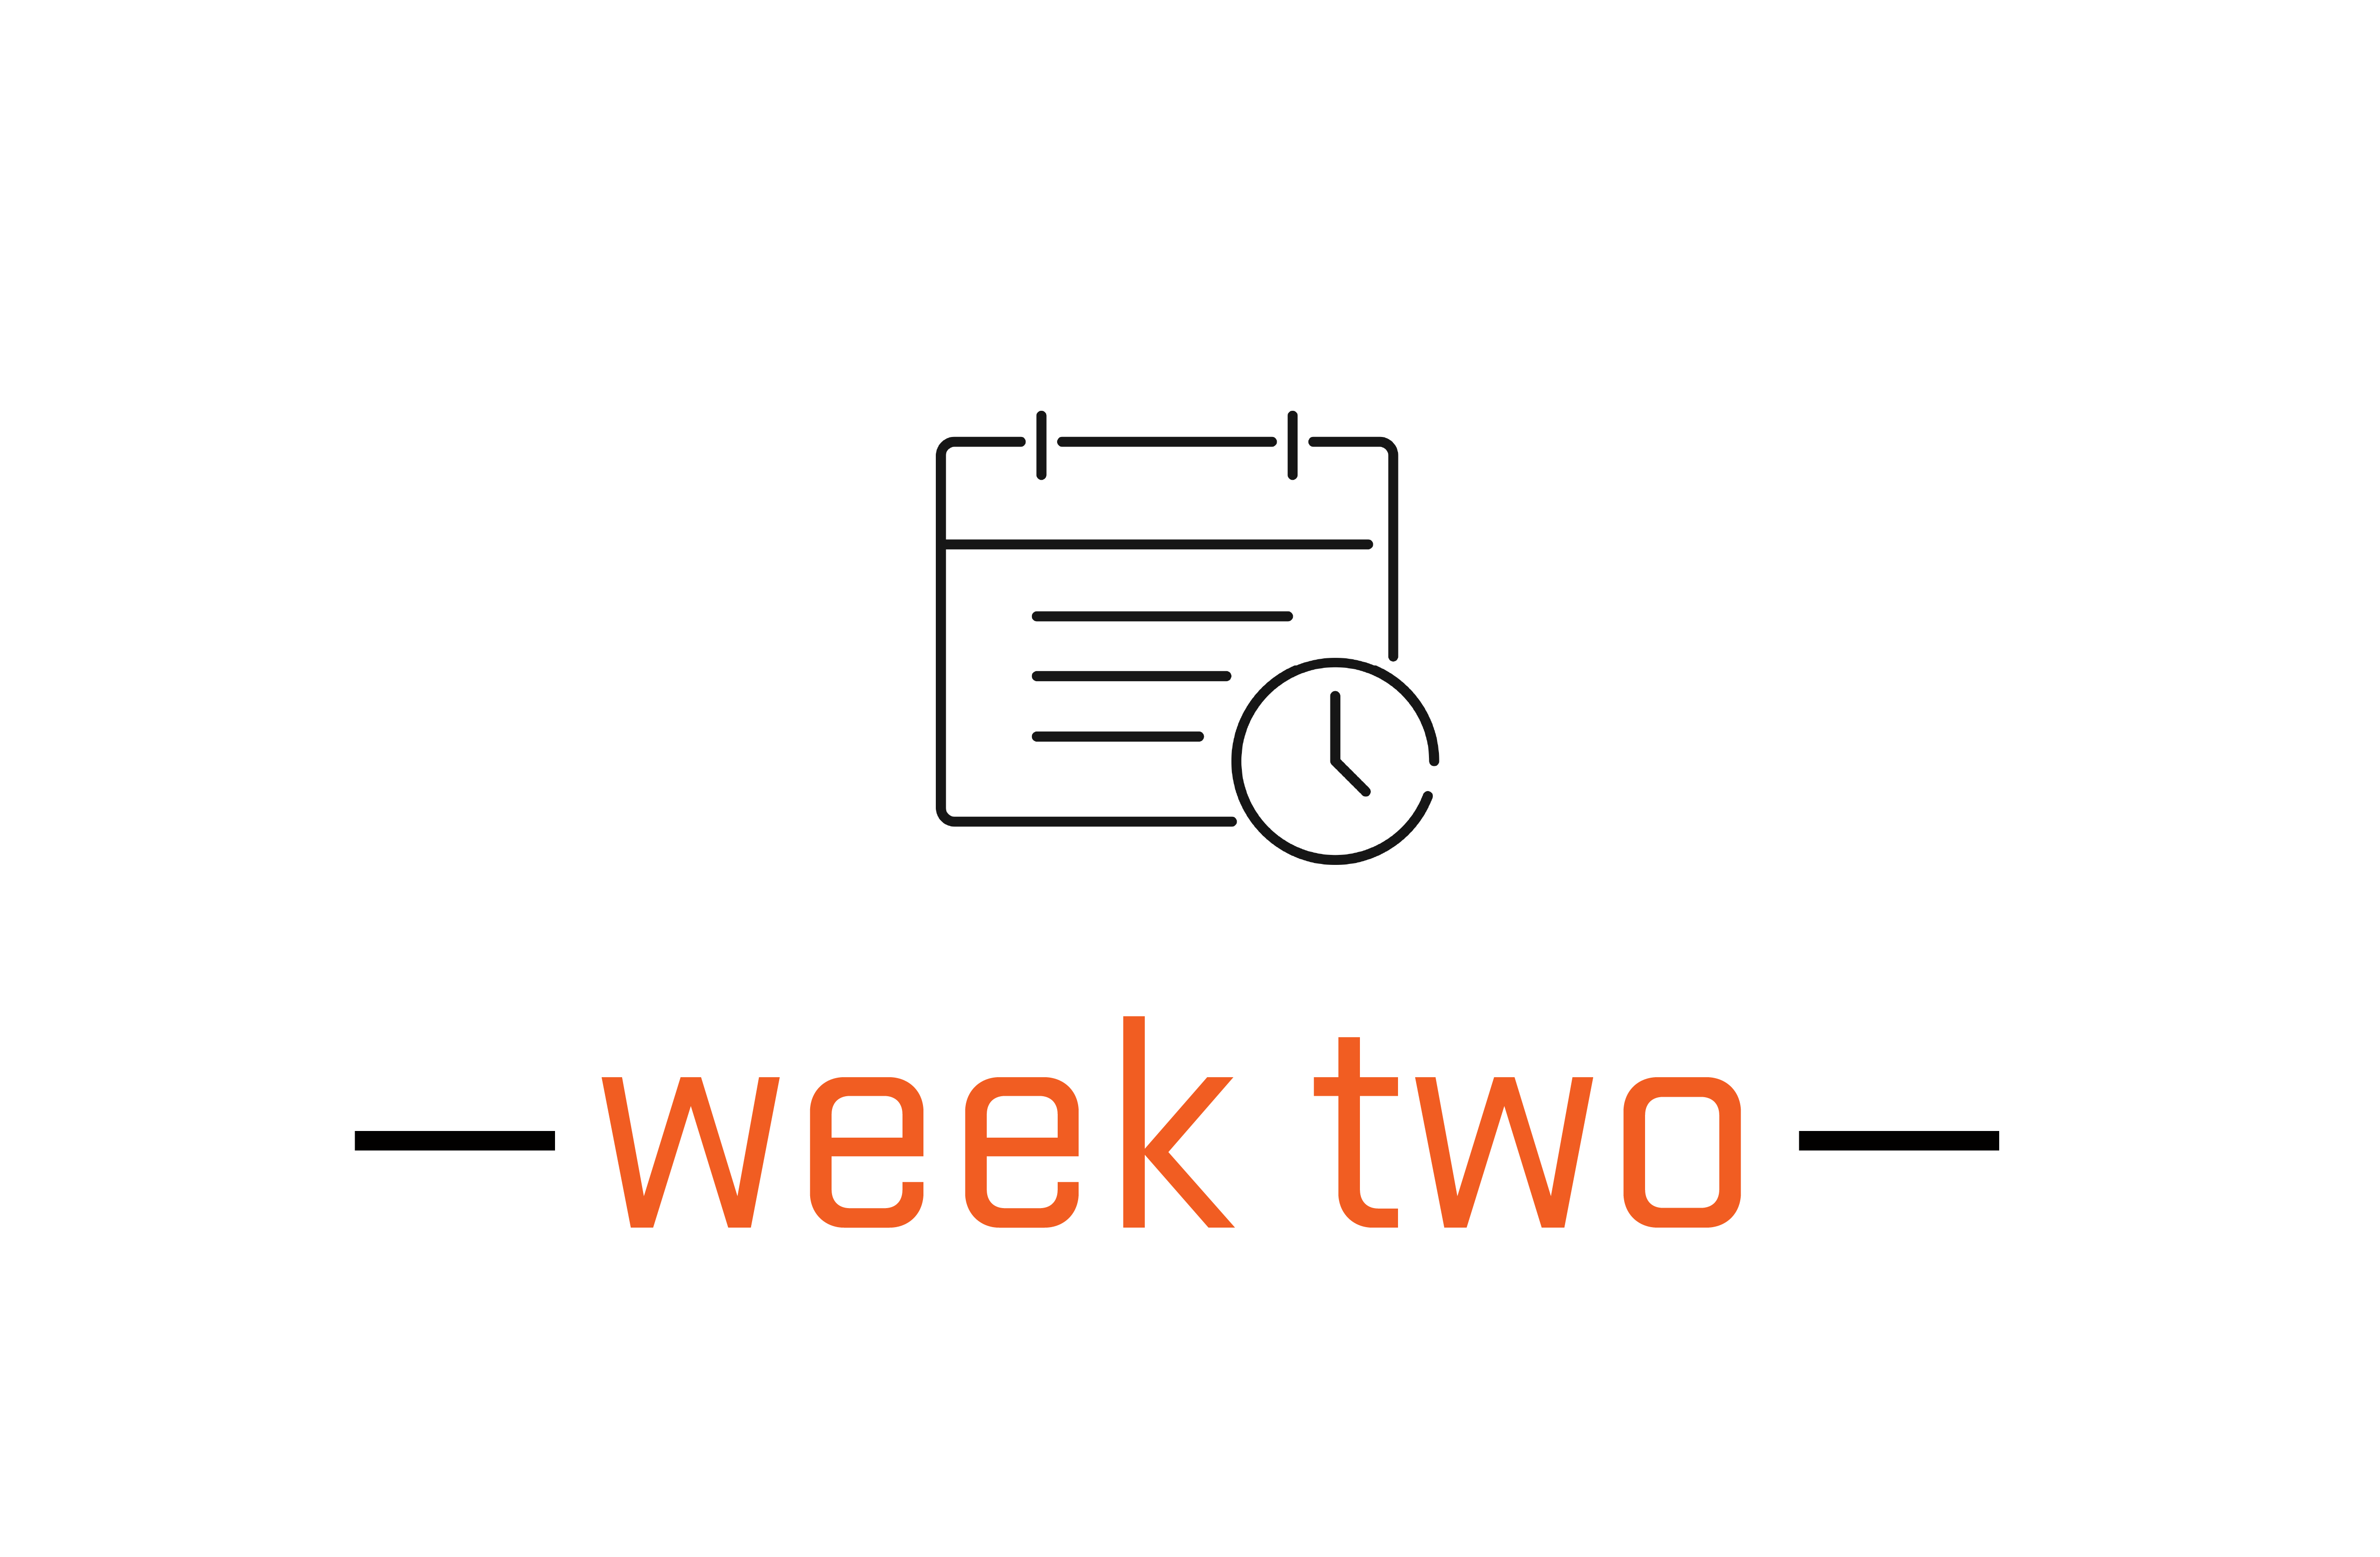 week 2 business Bus 475 week 2 download the outlined business plan consists of establishing a web based and brick and mortar athletic company that will outline workouts.